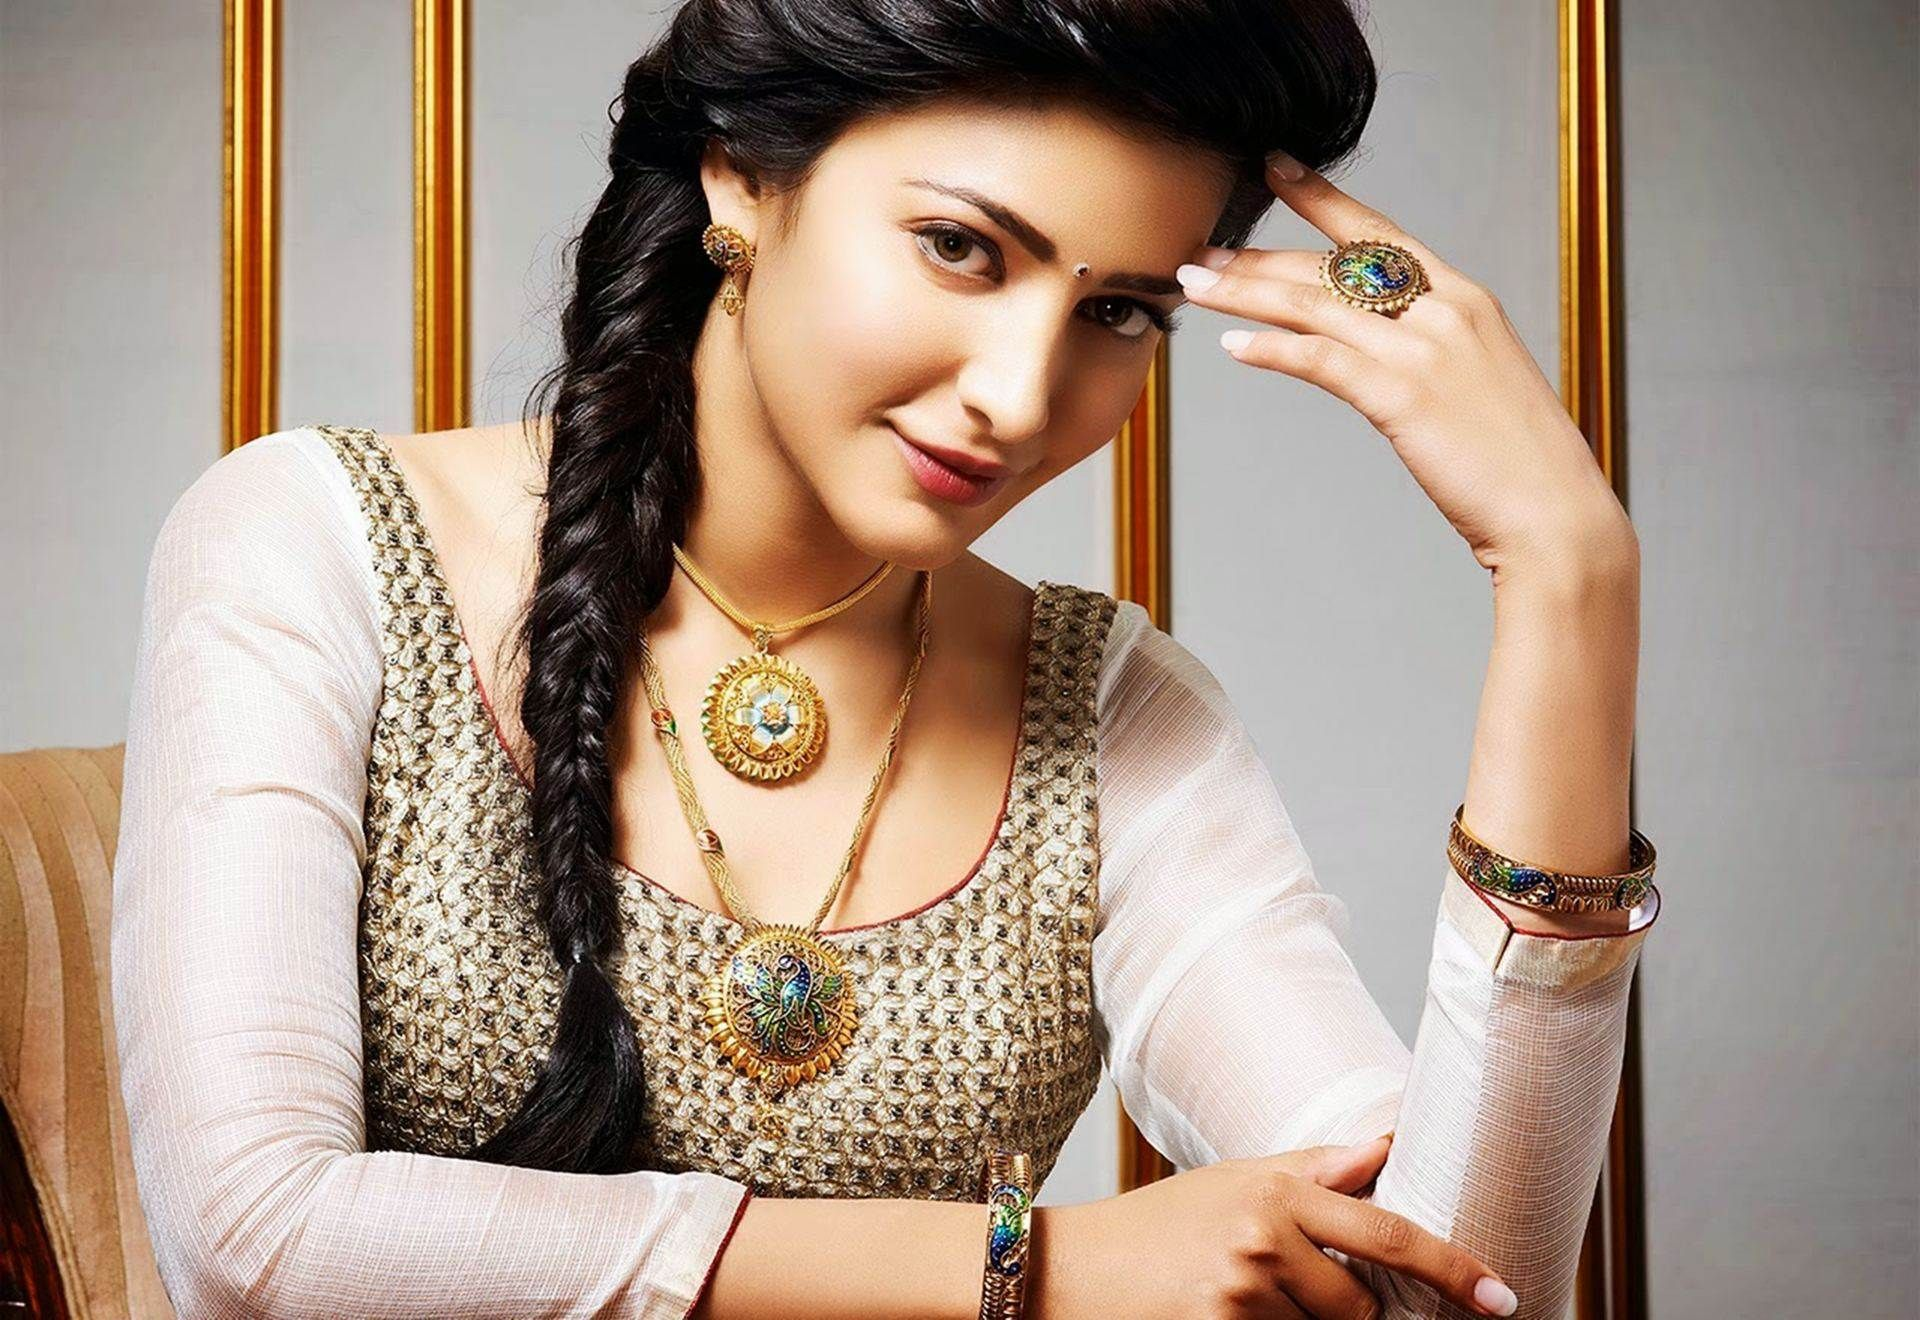 collection of shruti hassan hd wallpaper on spyder wallpapers 1920